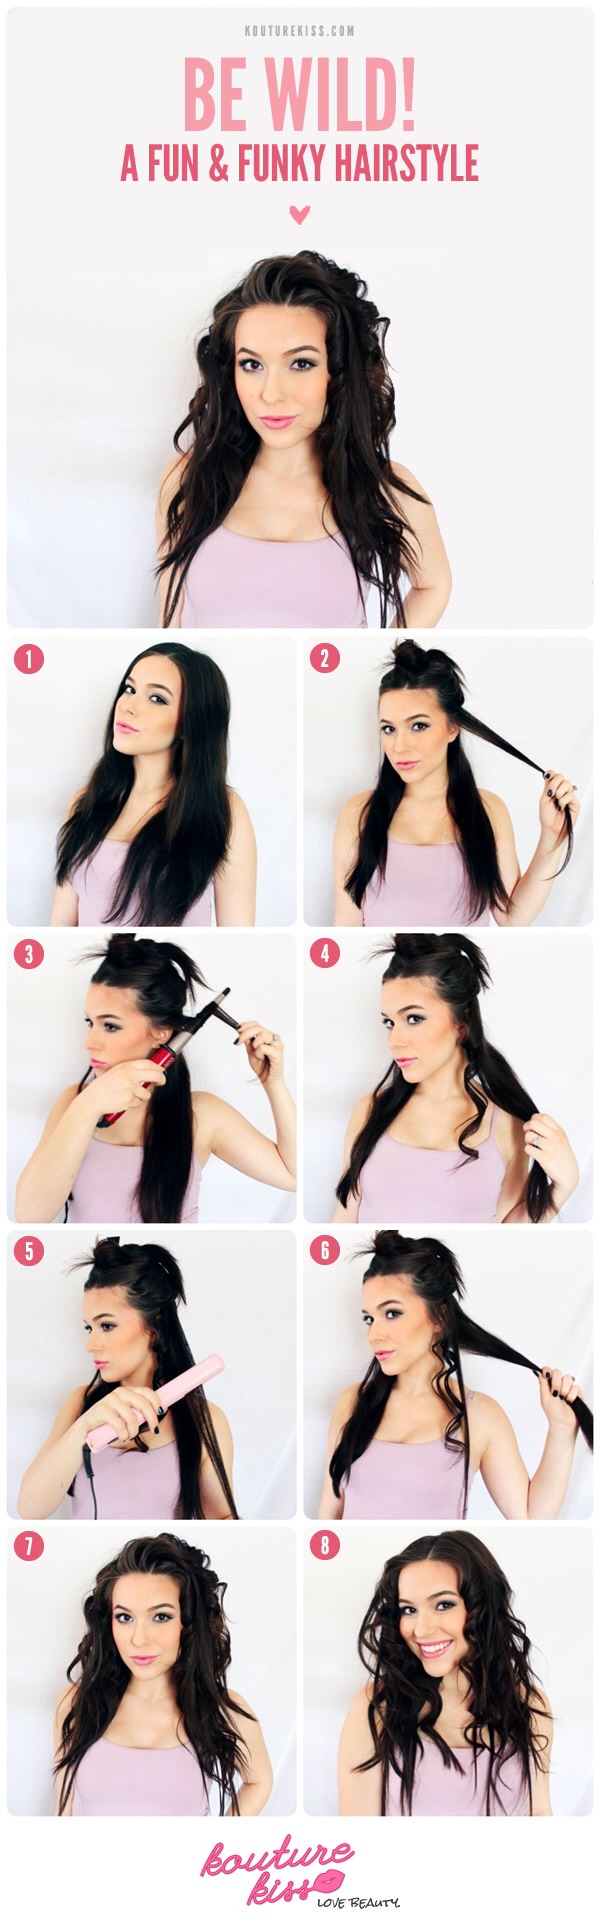 1: Begin with clean, dry hair parted the way you want it for the hairstyle. 2: Section off the top two-thirds of your hair and begin with a one inch section of hair.  3 & 4: Curl this section of hair using a ½-1 inch curling wand or barrel. 5 & 6: Take the next 1 inch section and straighten this one